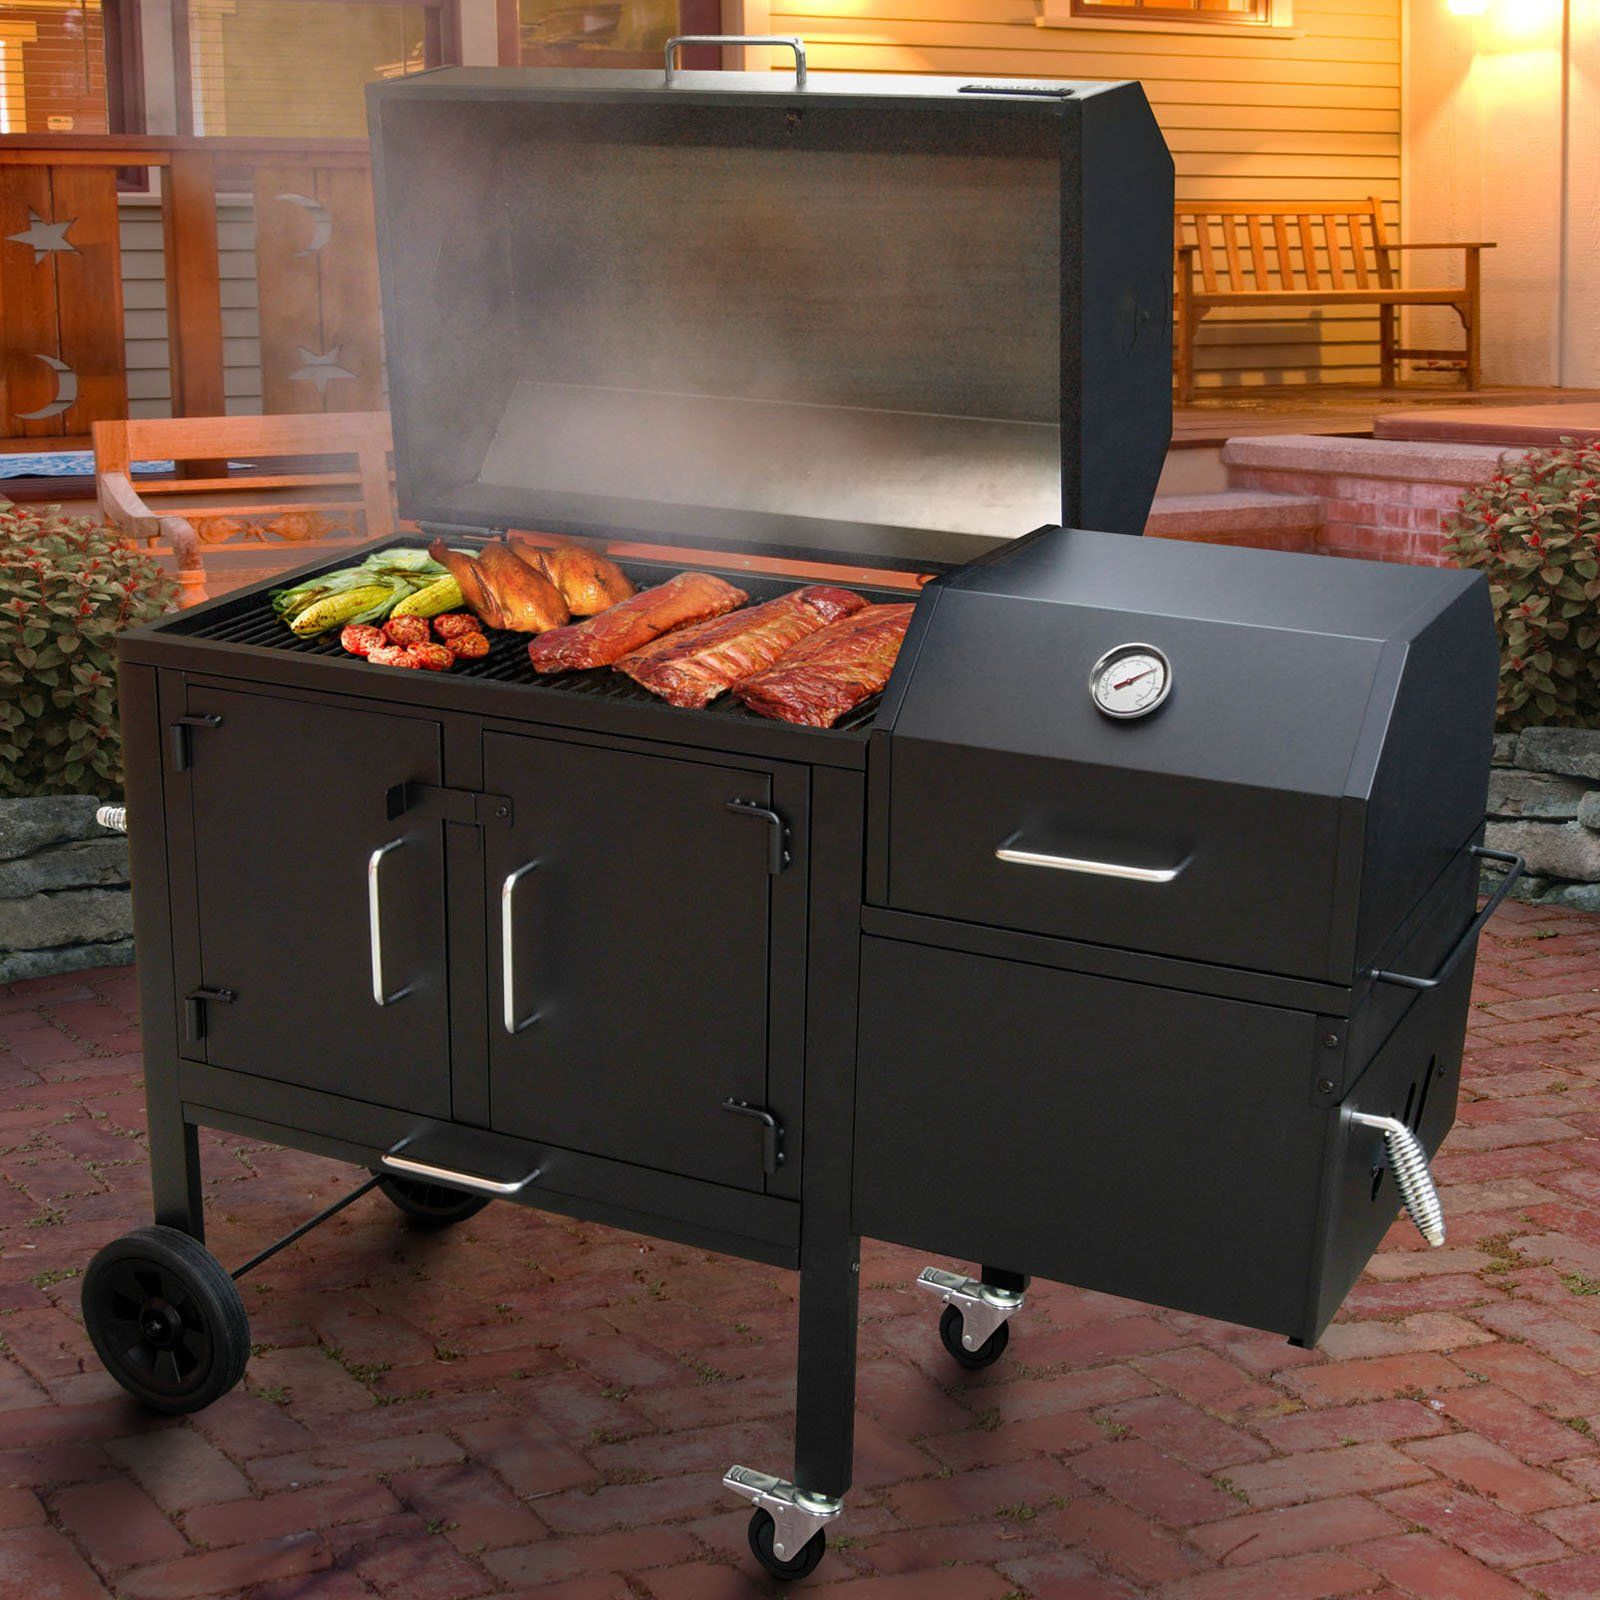 Have to have it landmann black dog 42xt charcoal grill